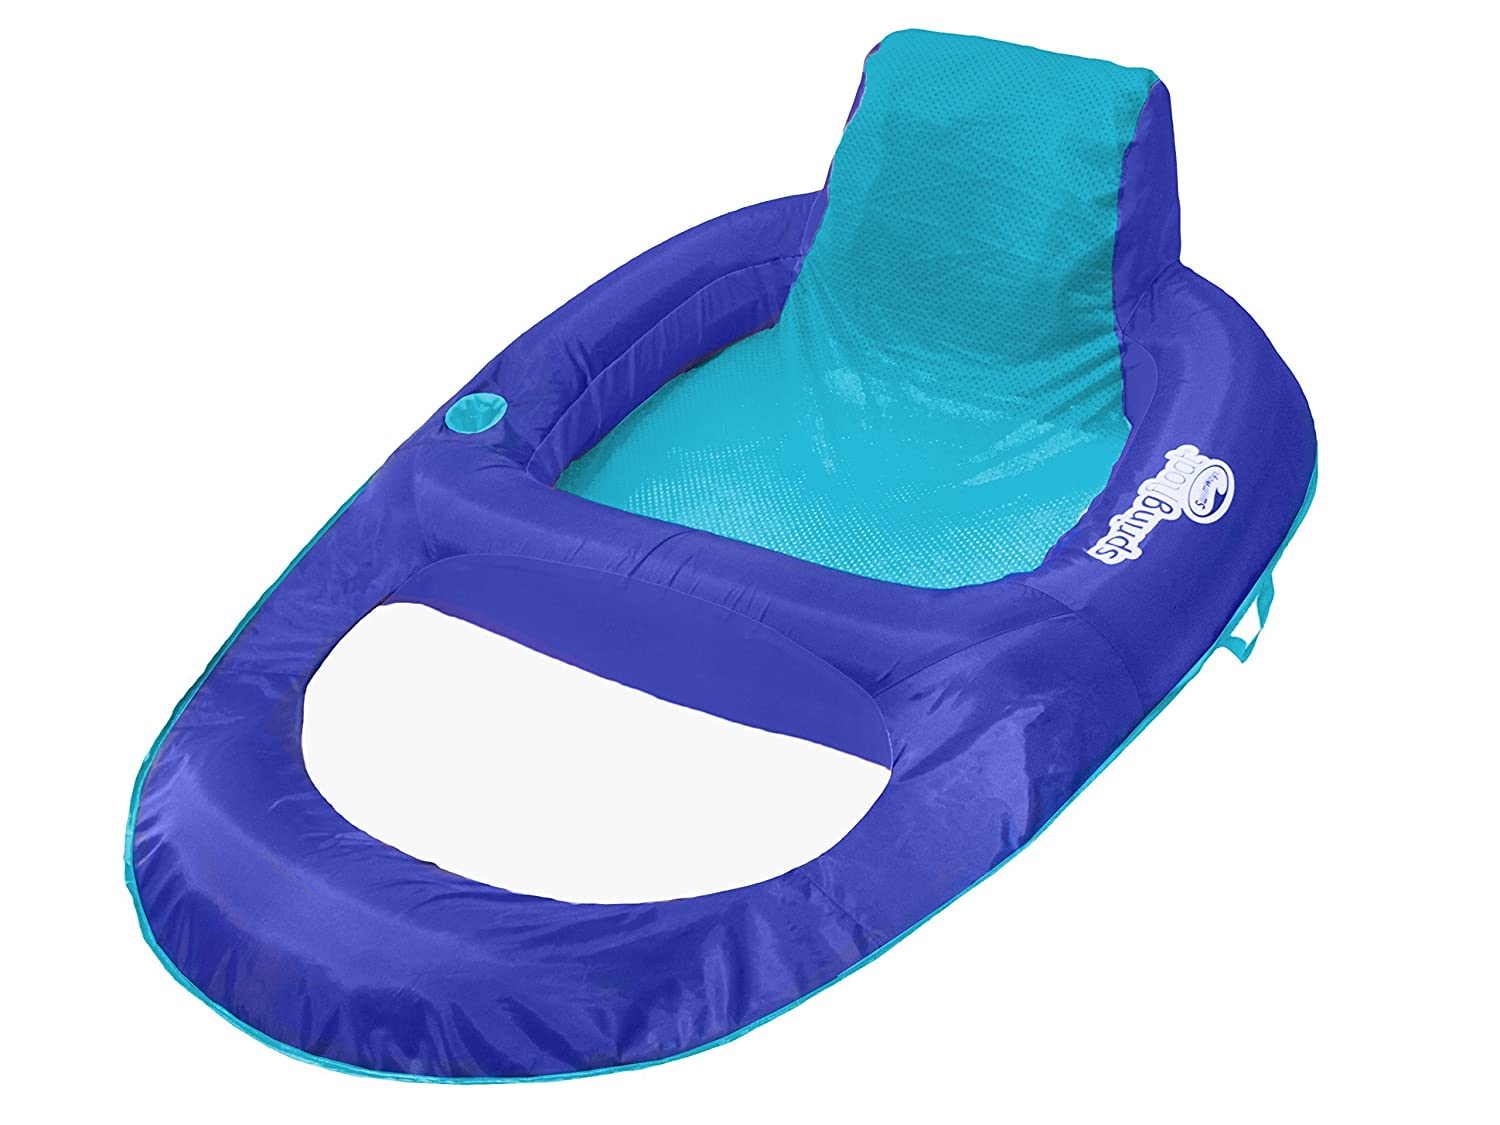 What Are The Best Inflatable Pool Floats For Large Guy